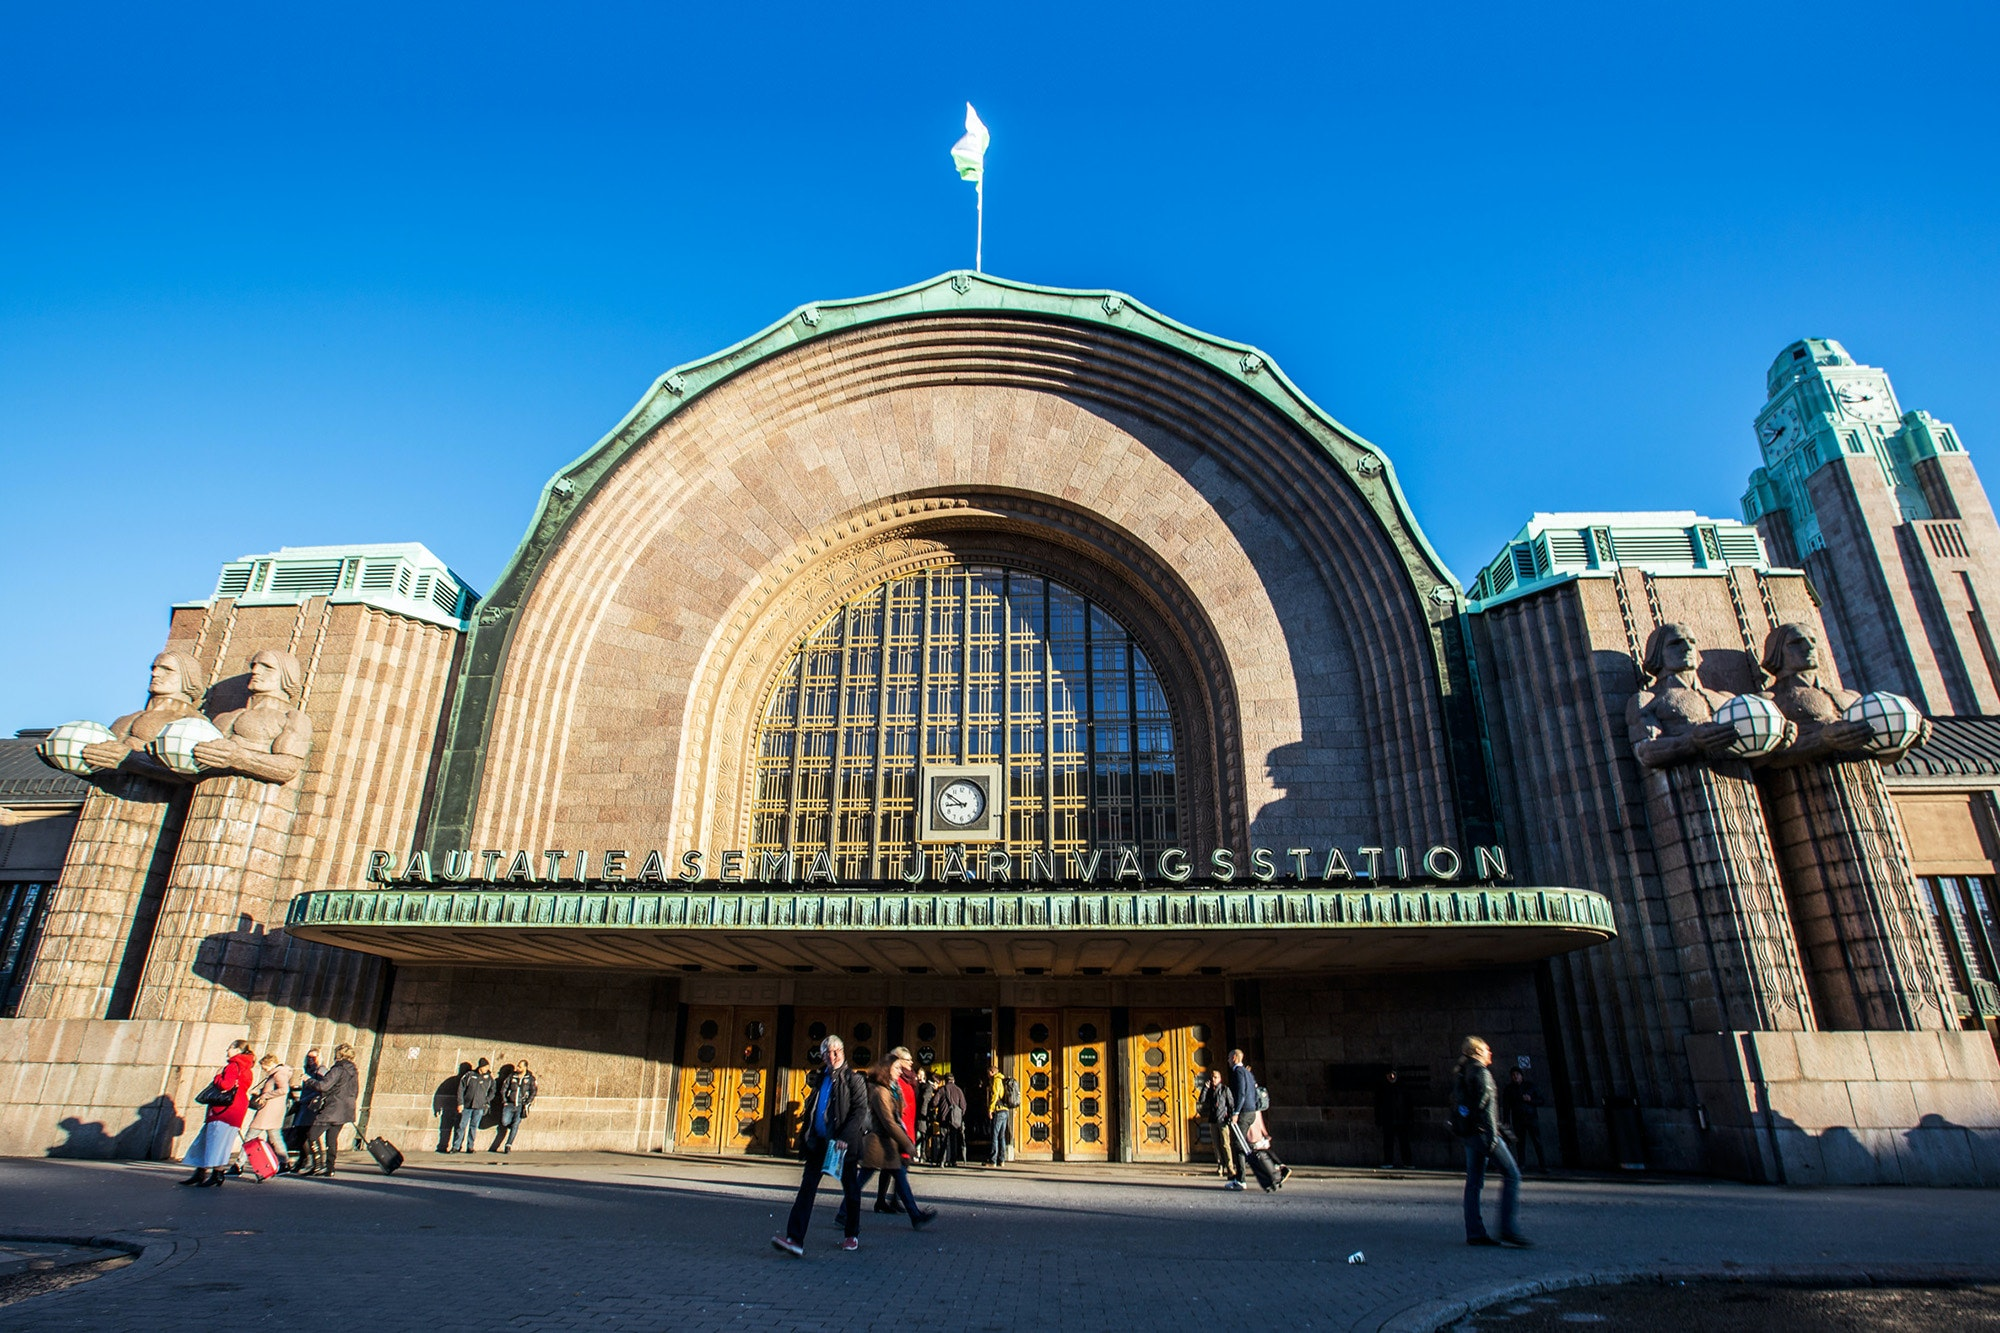 Lantern-carrying giants stand guard on either side of the entrance to Helsinki Central Station.